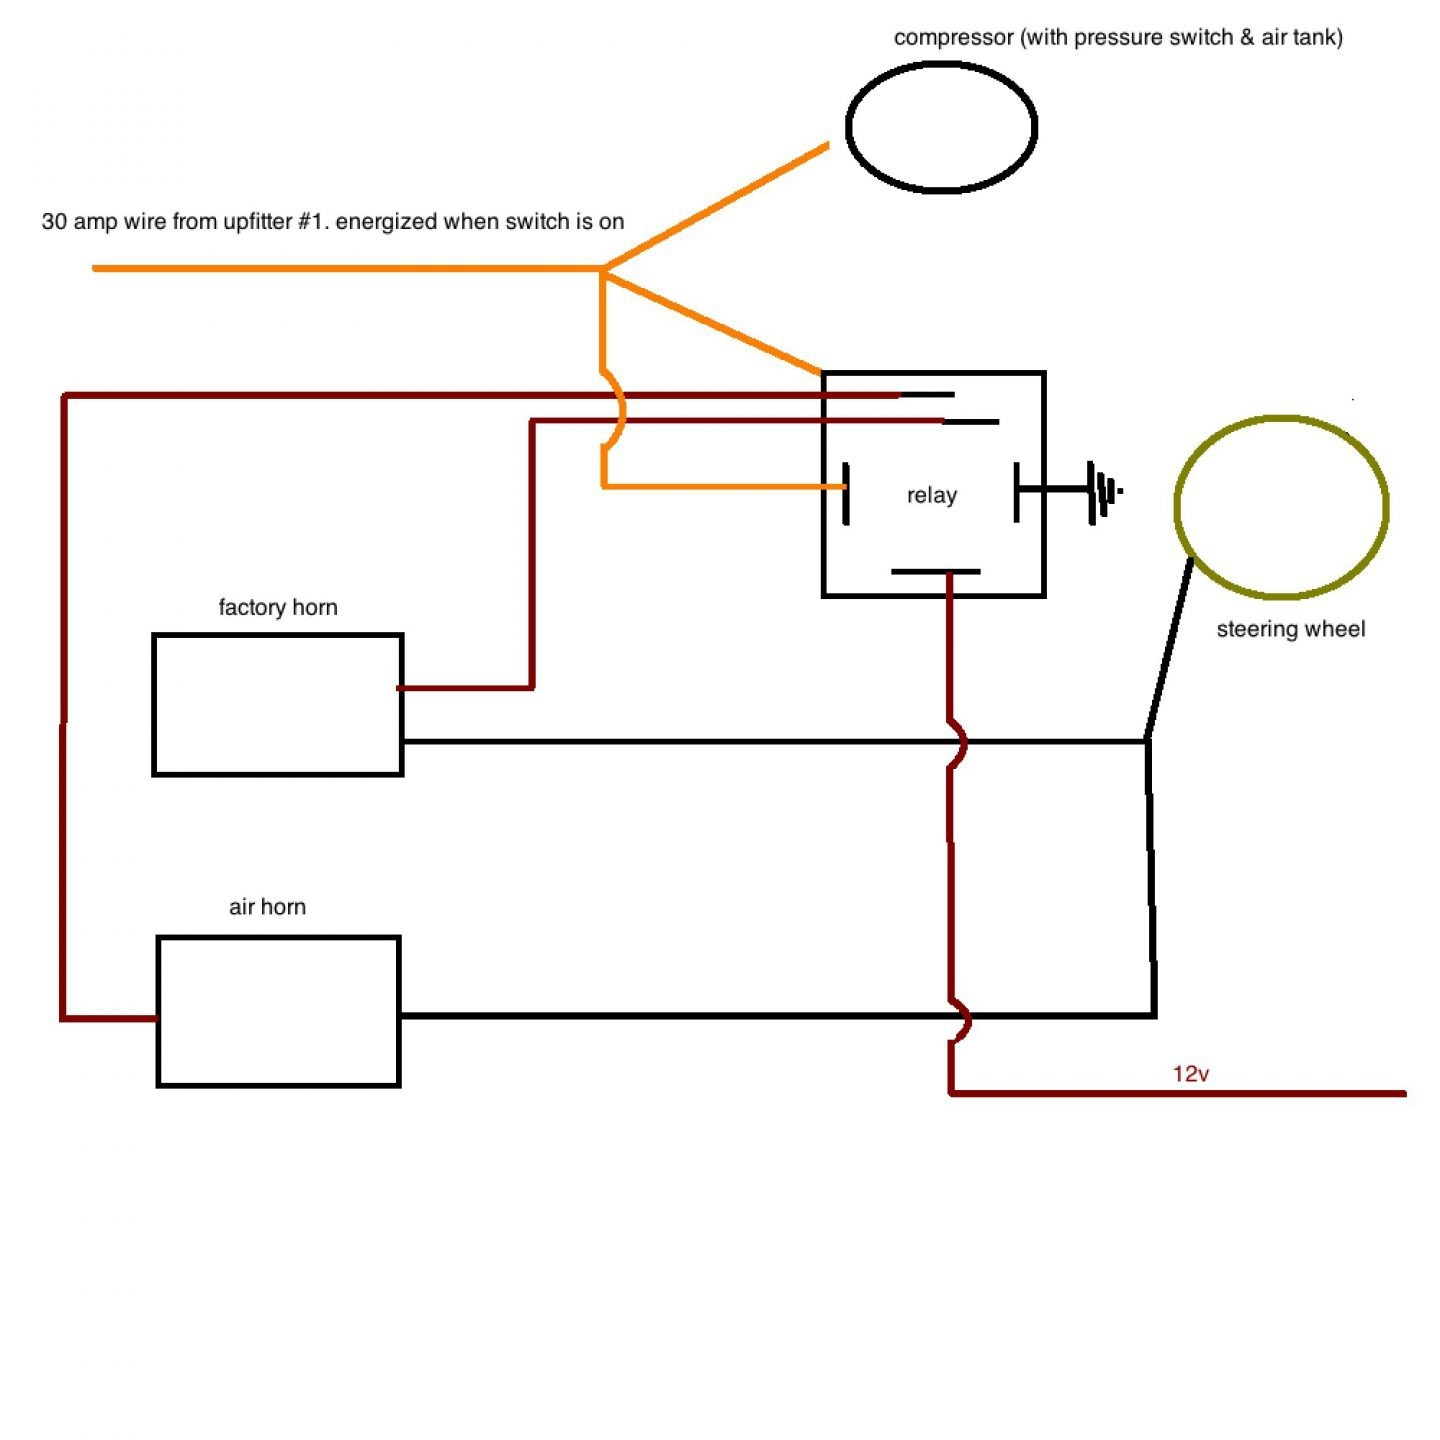 current sensing relay wiring diagram Collection-current sensing relay wiring diagram Collection air horn wiring diagram Collection Air Horn Wiring Diagram 15-t